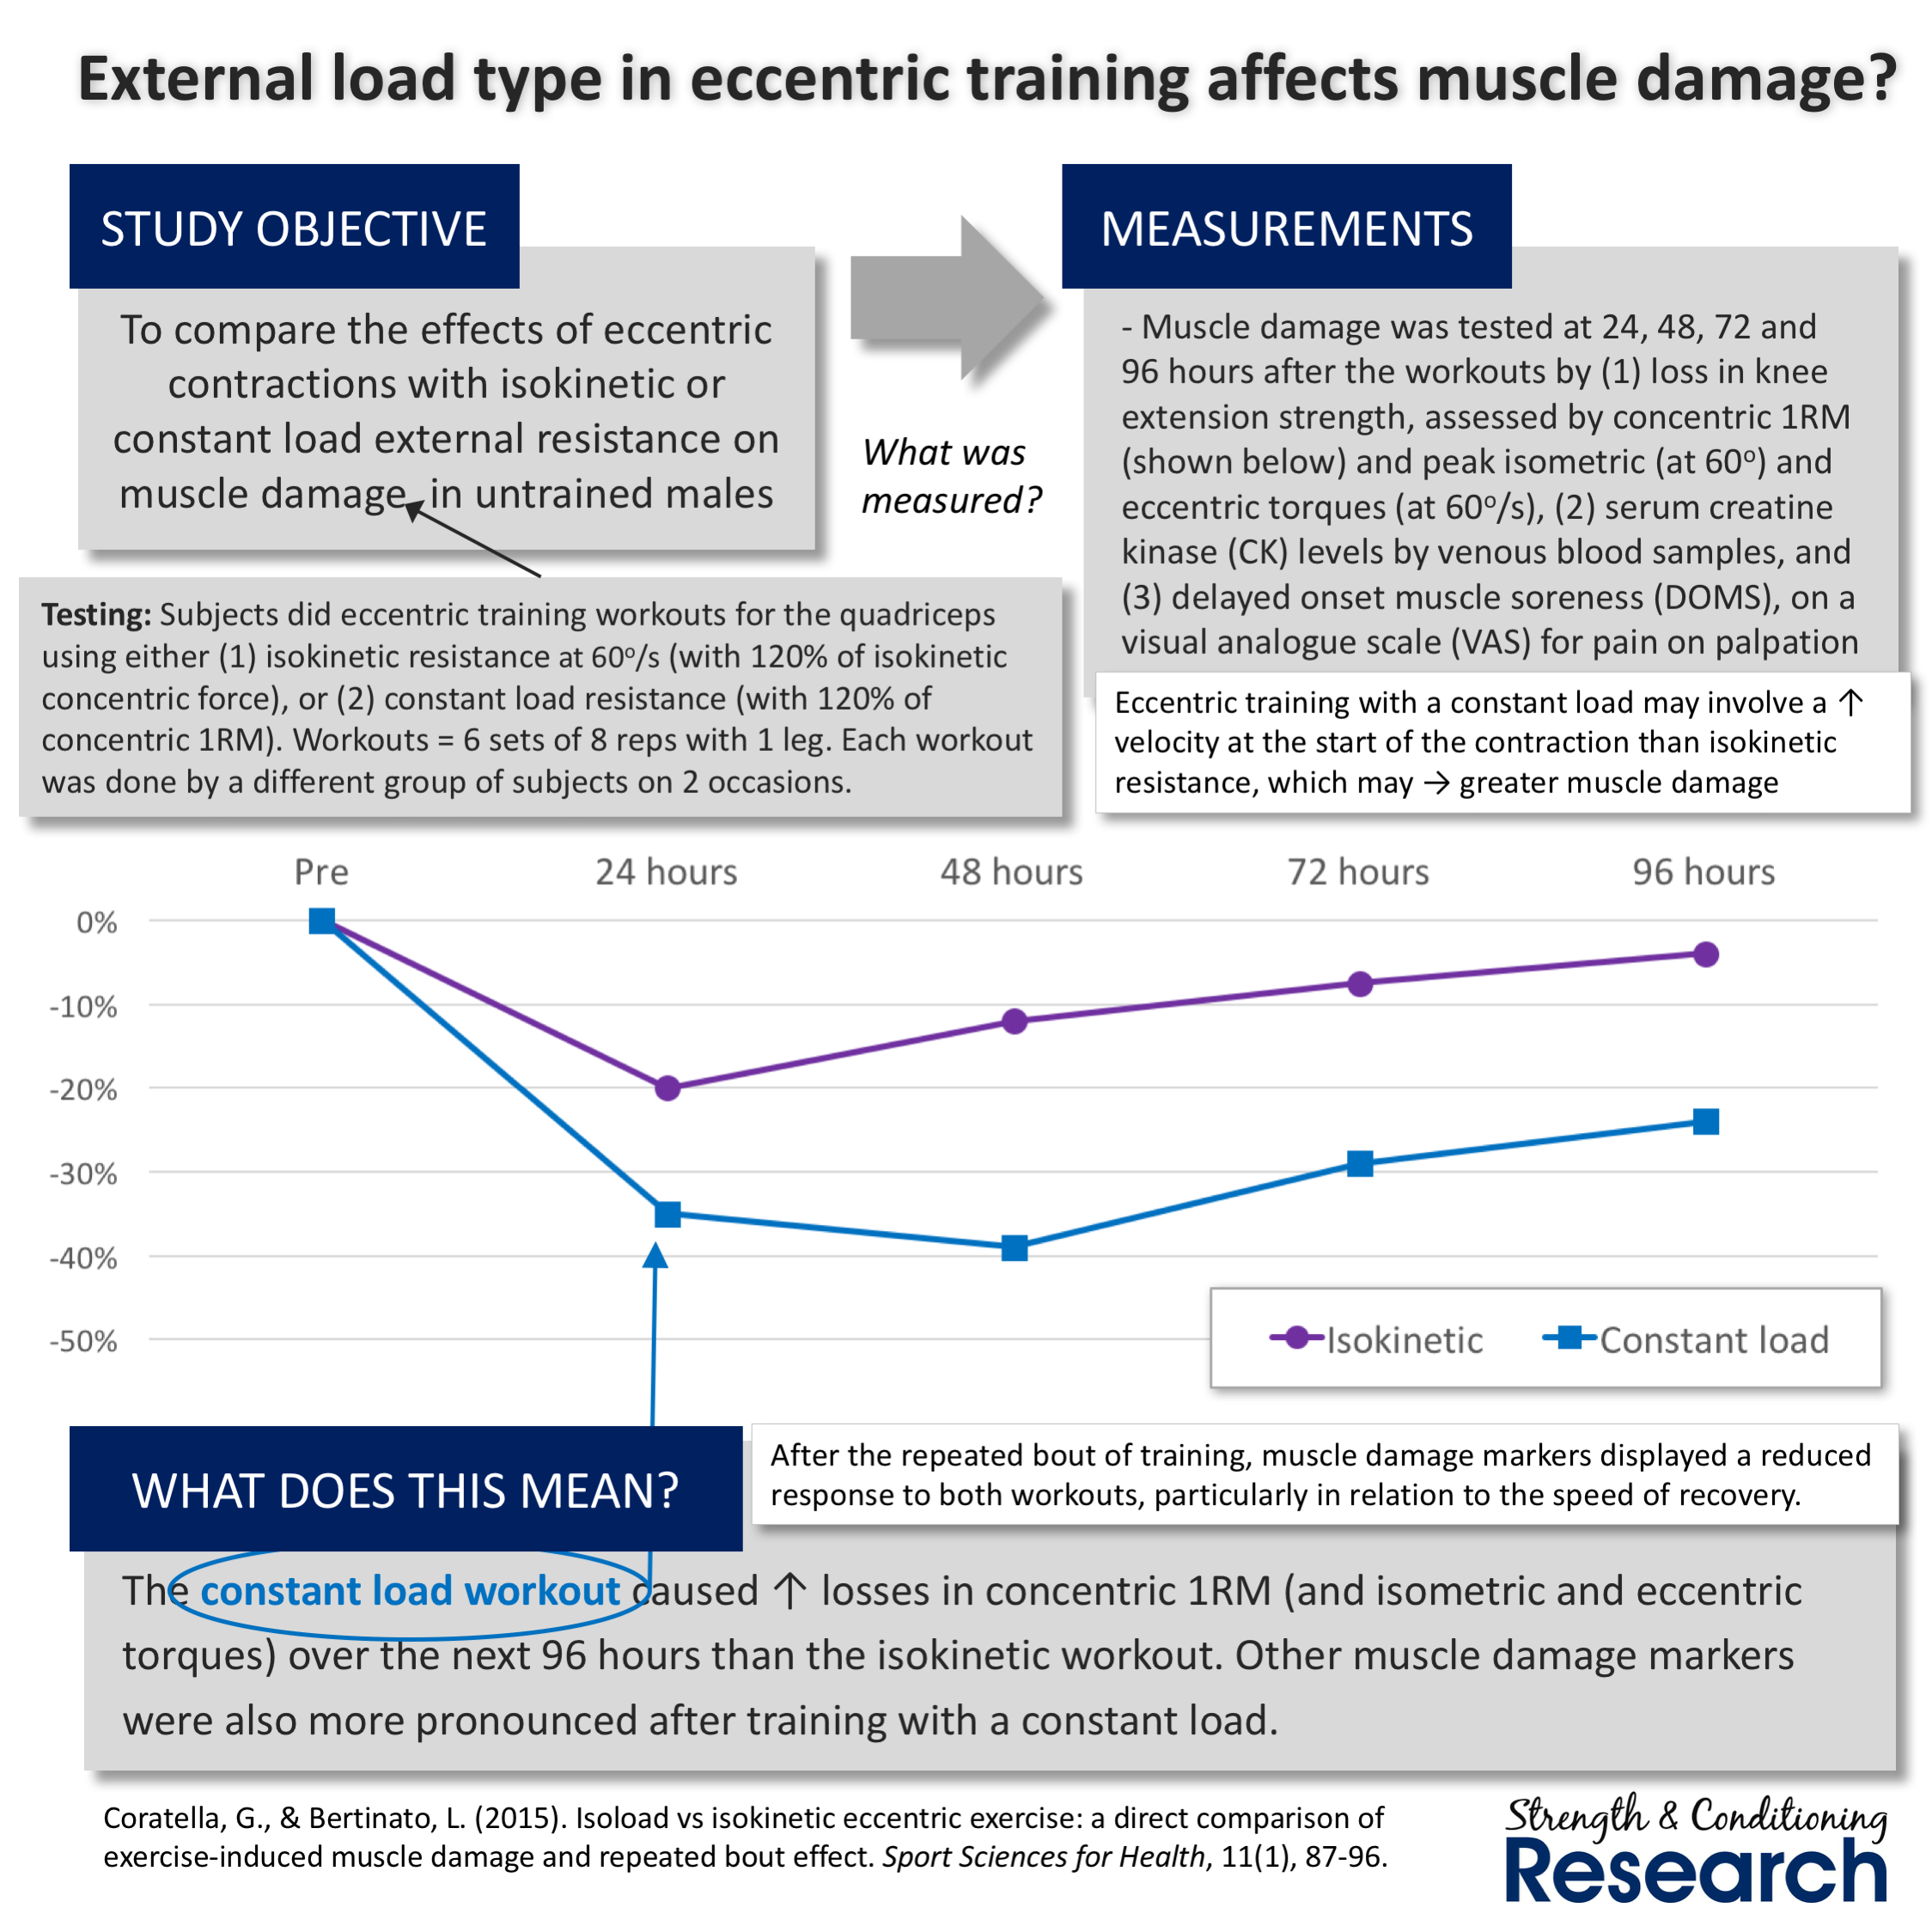 strength and conditioning research review